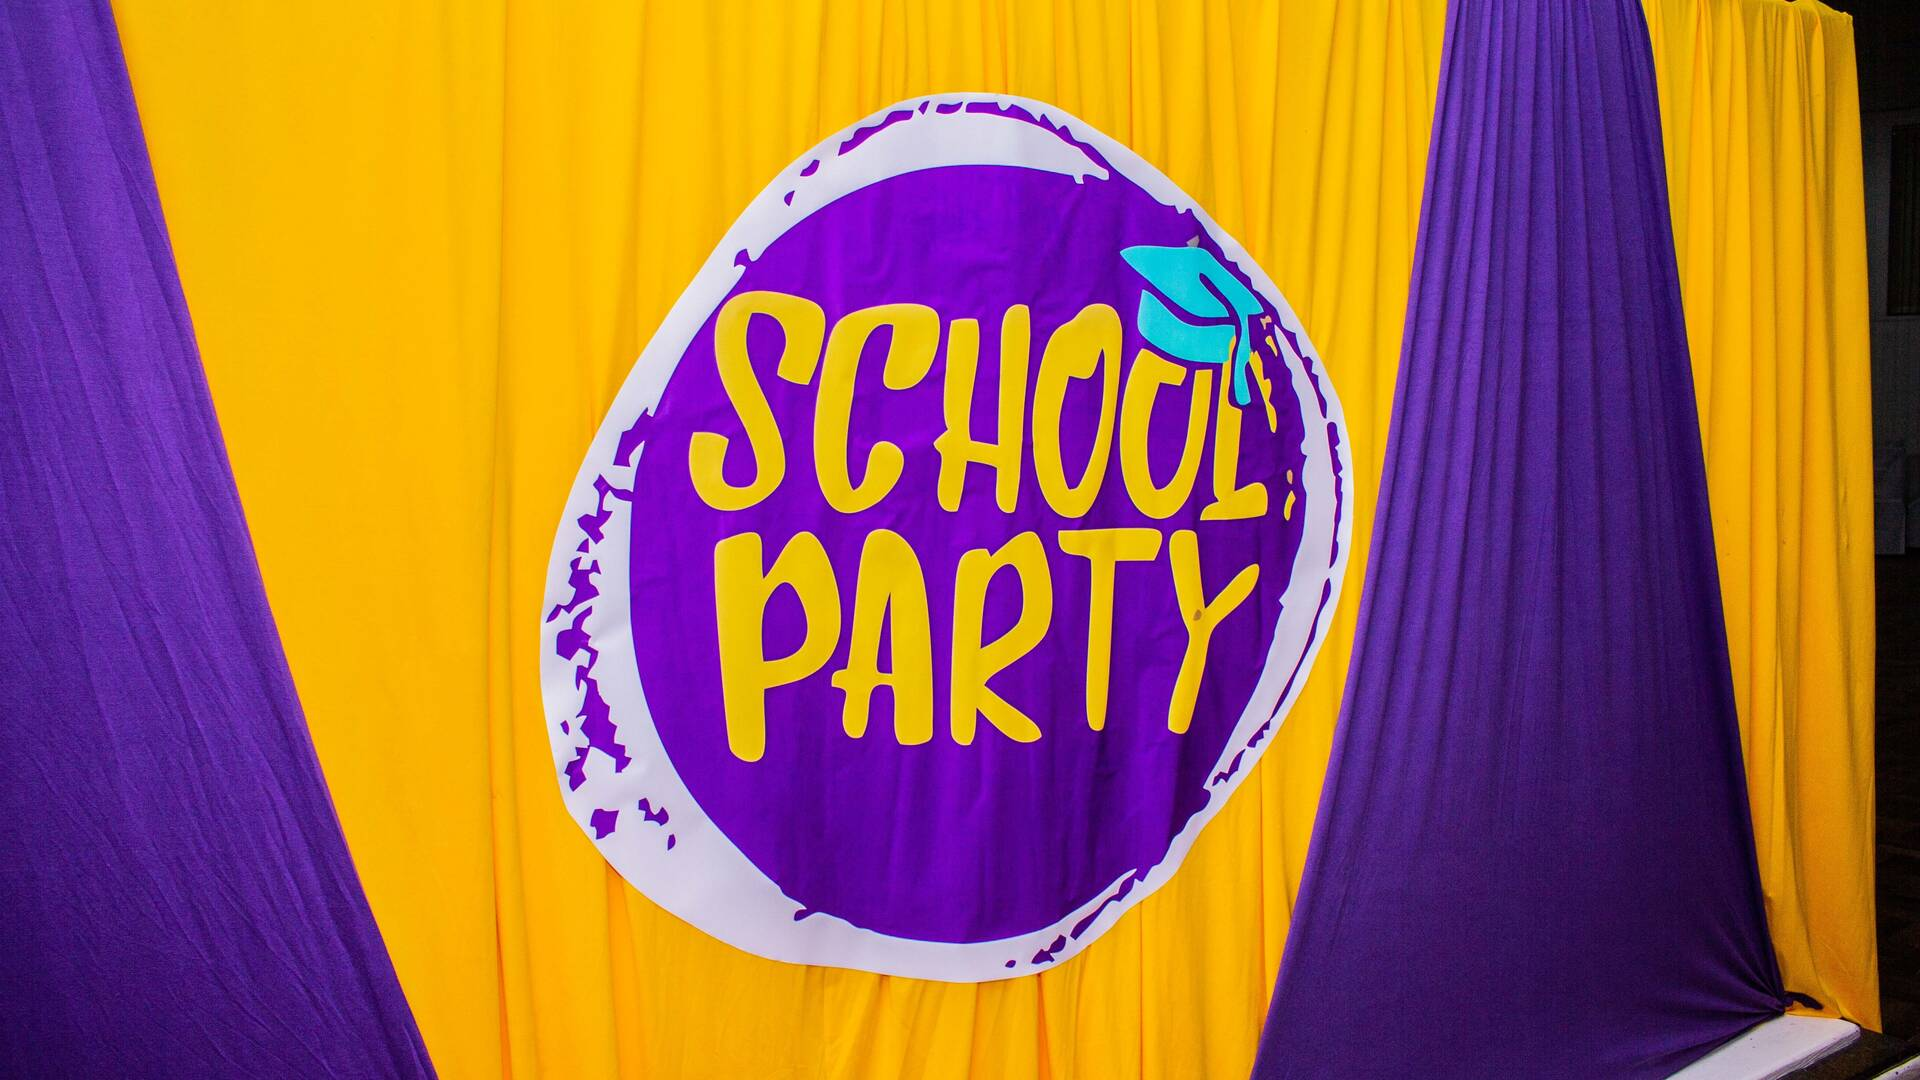 EVENTOS de SCHOOL PARTY